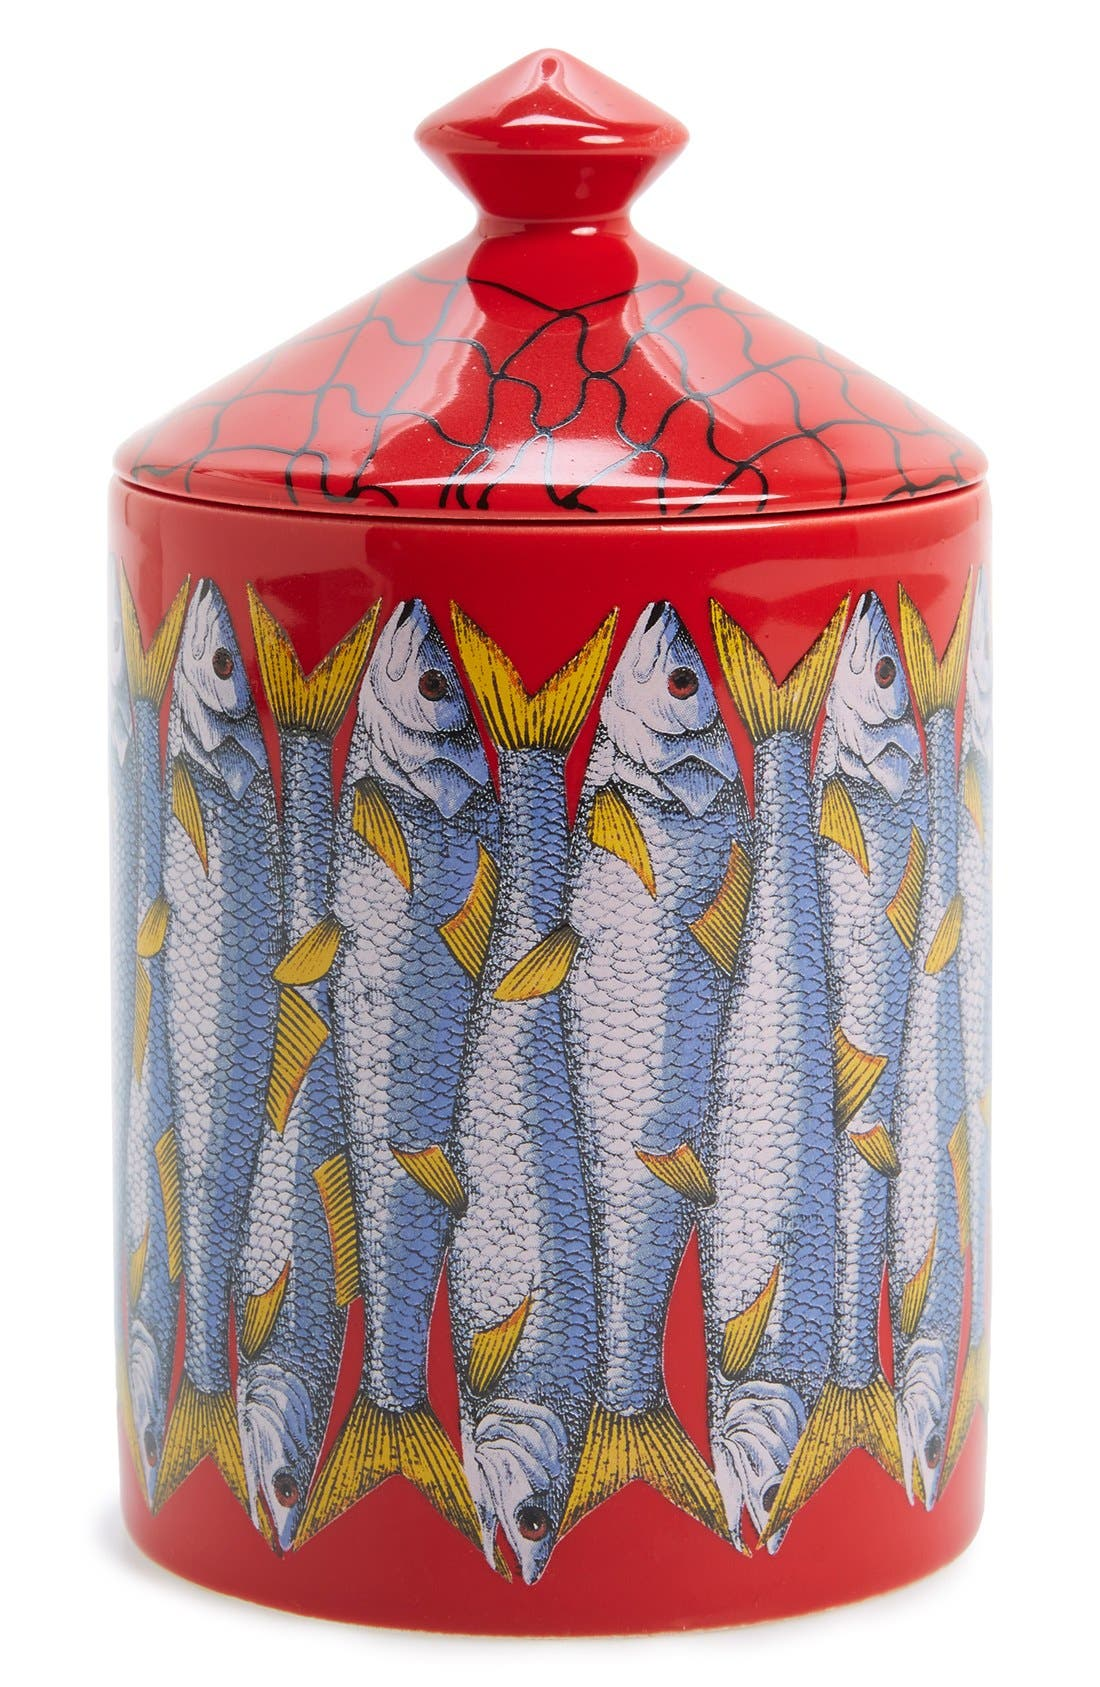 Main Image - Fornasetti 'Sardine Rosso' Lidded Candle